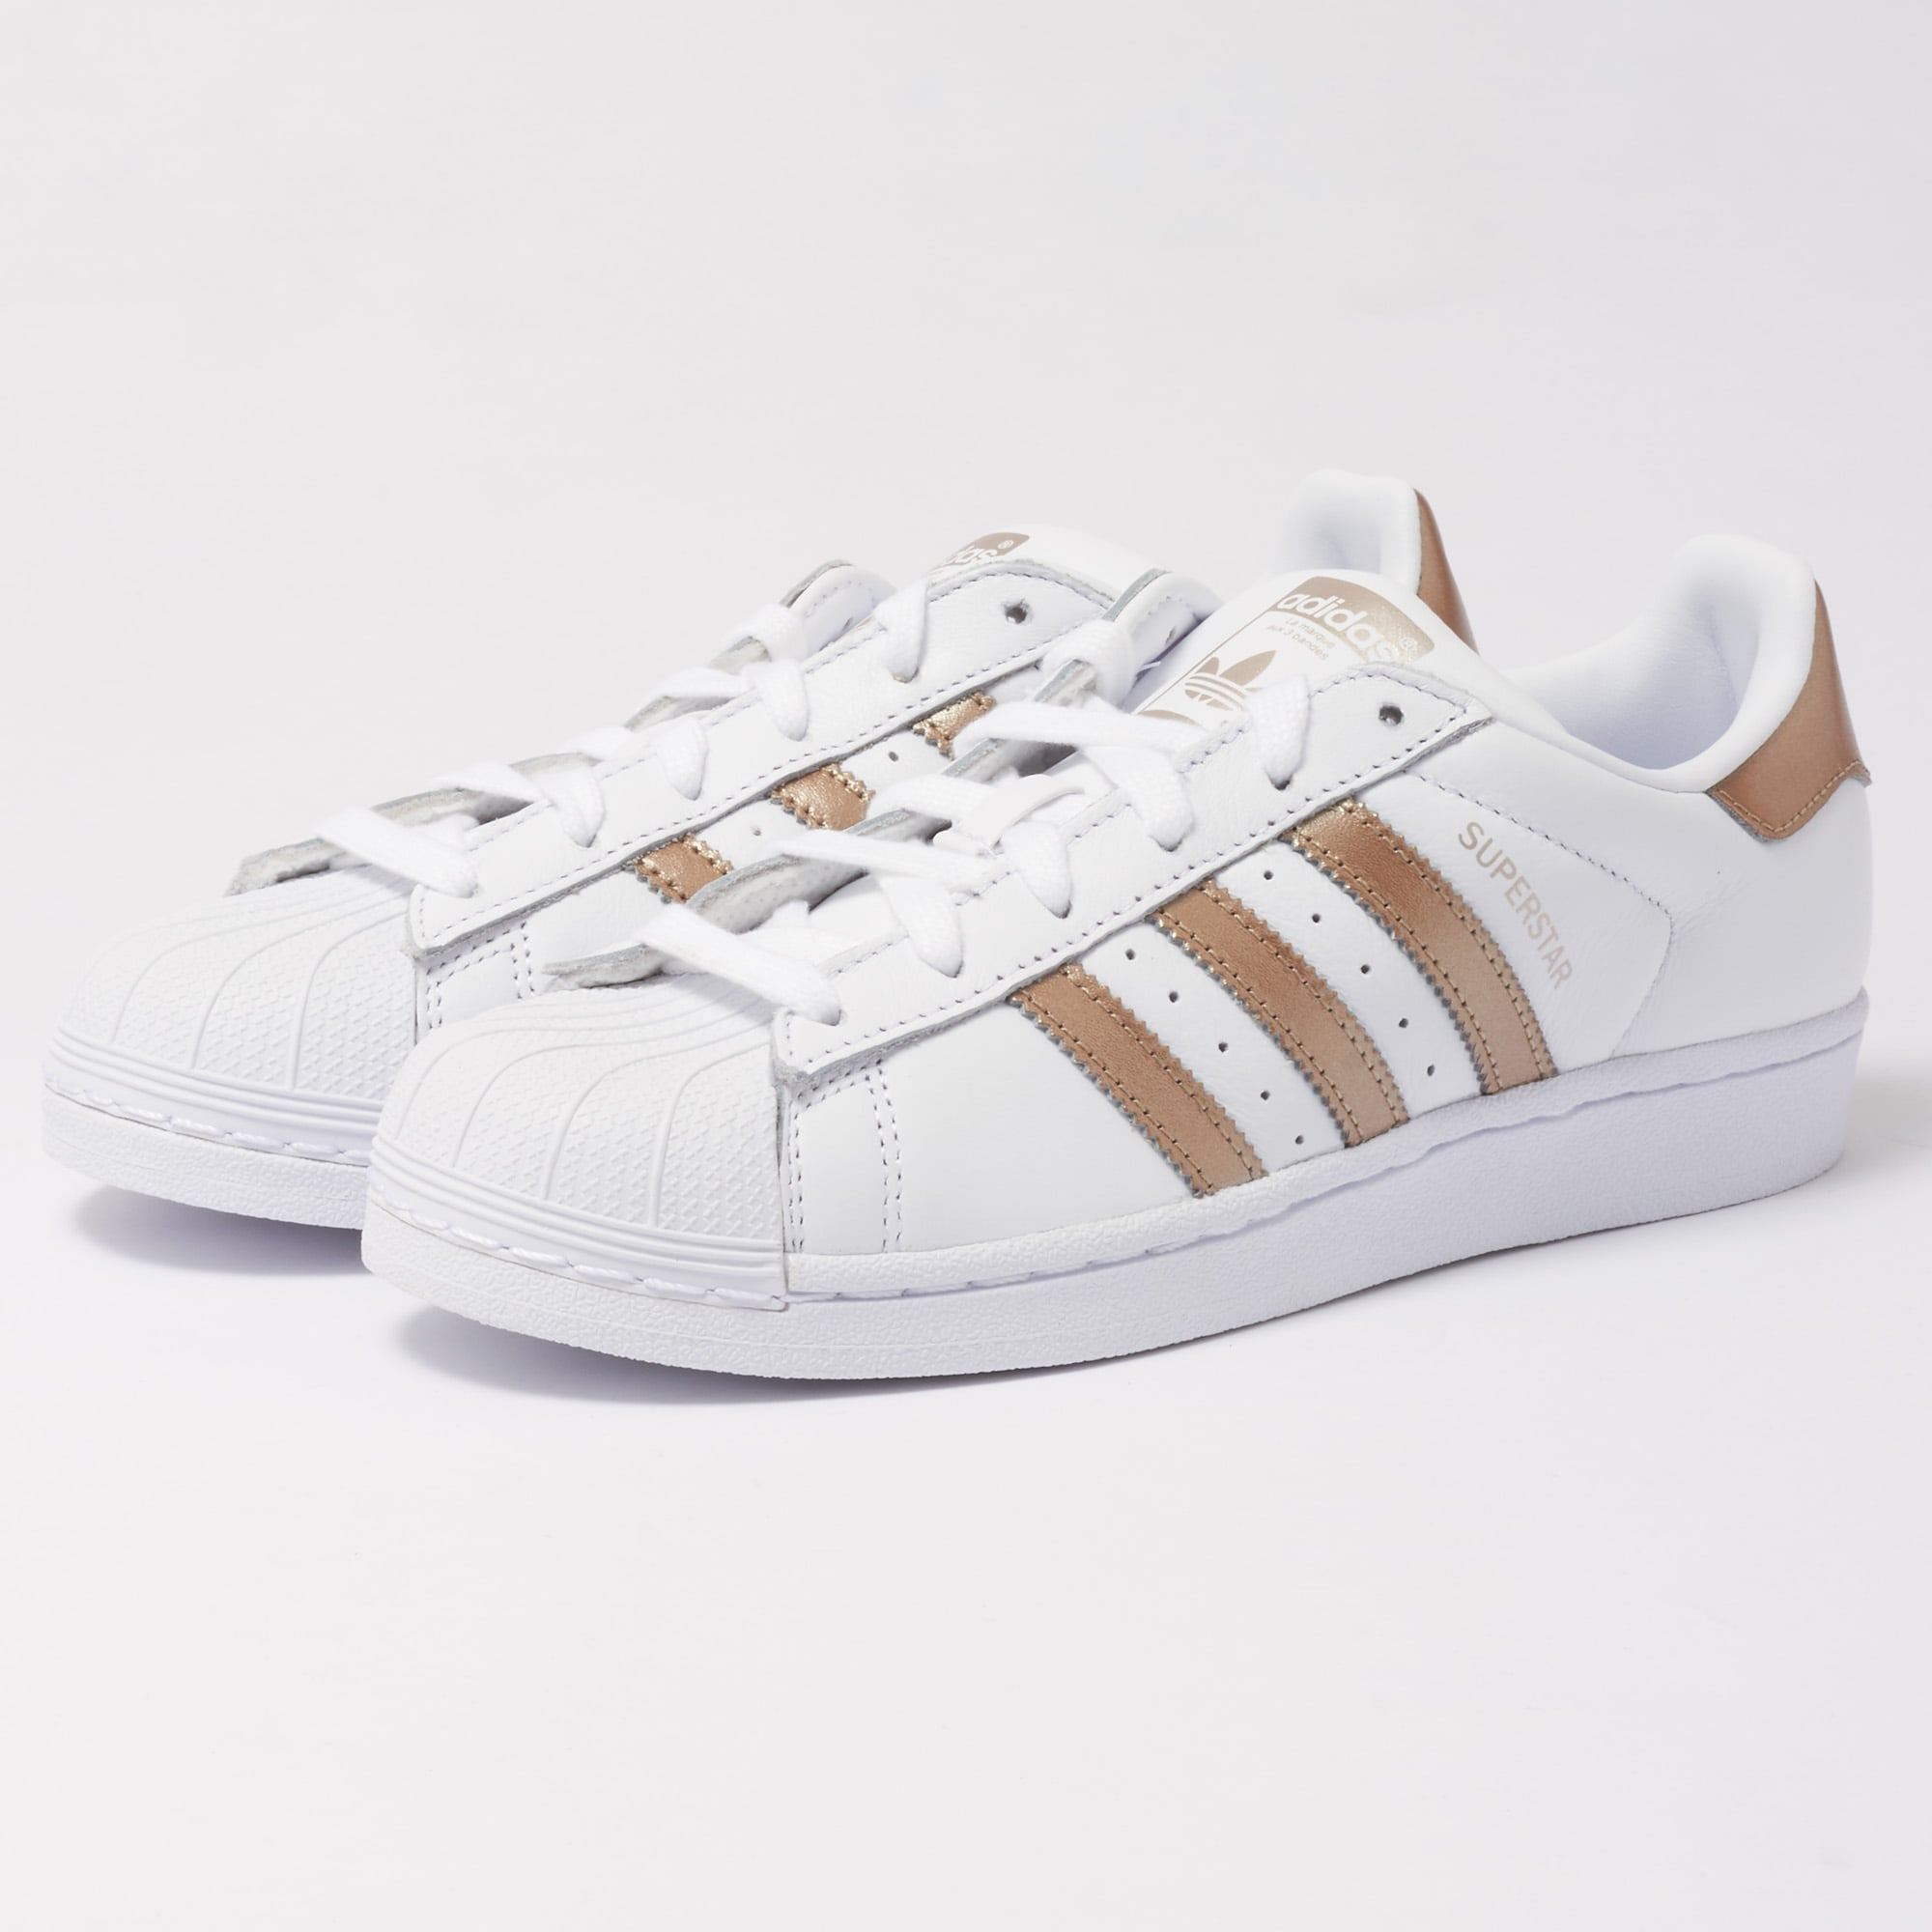 adidas damen canvas sneaker gazelle og wc farm